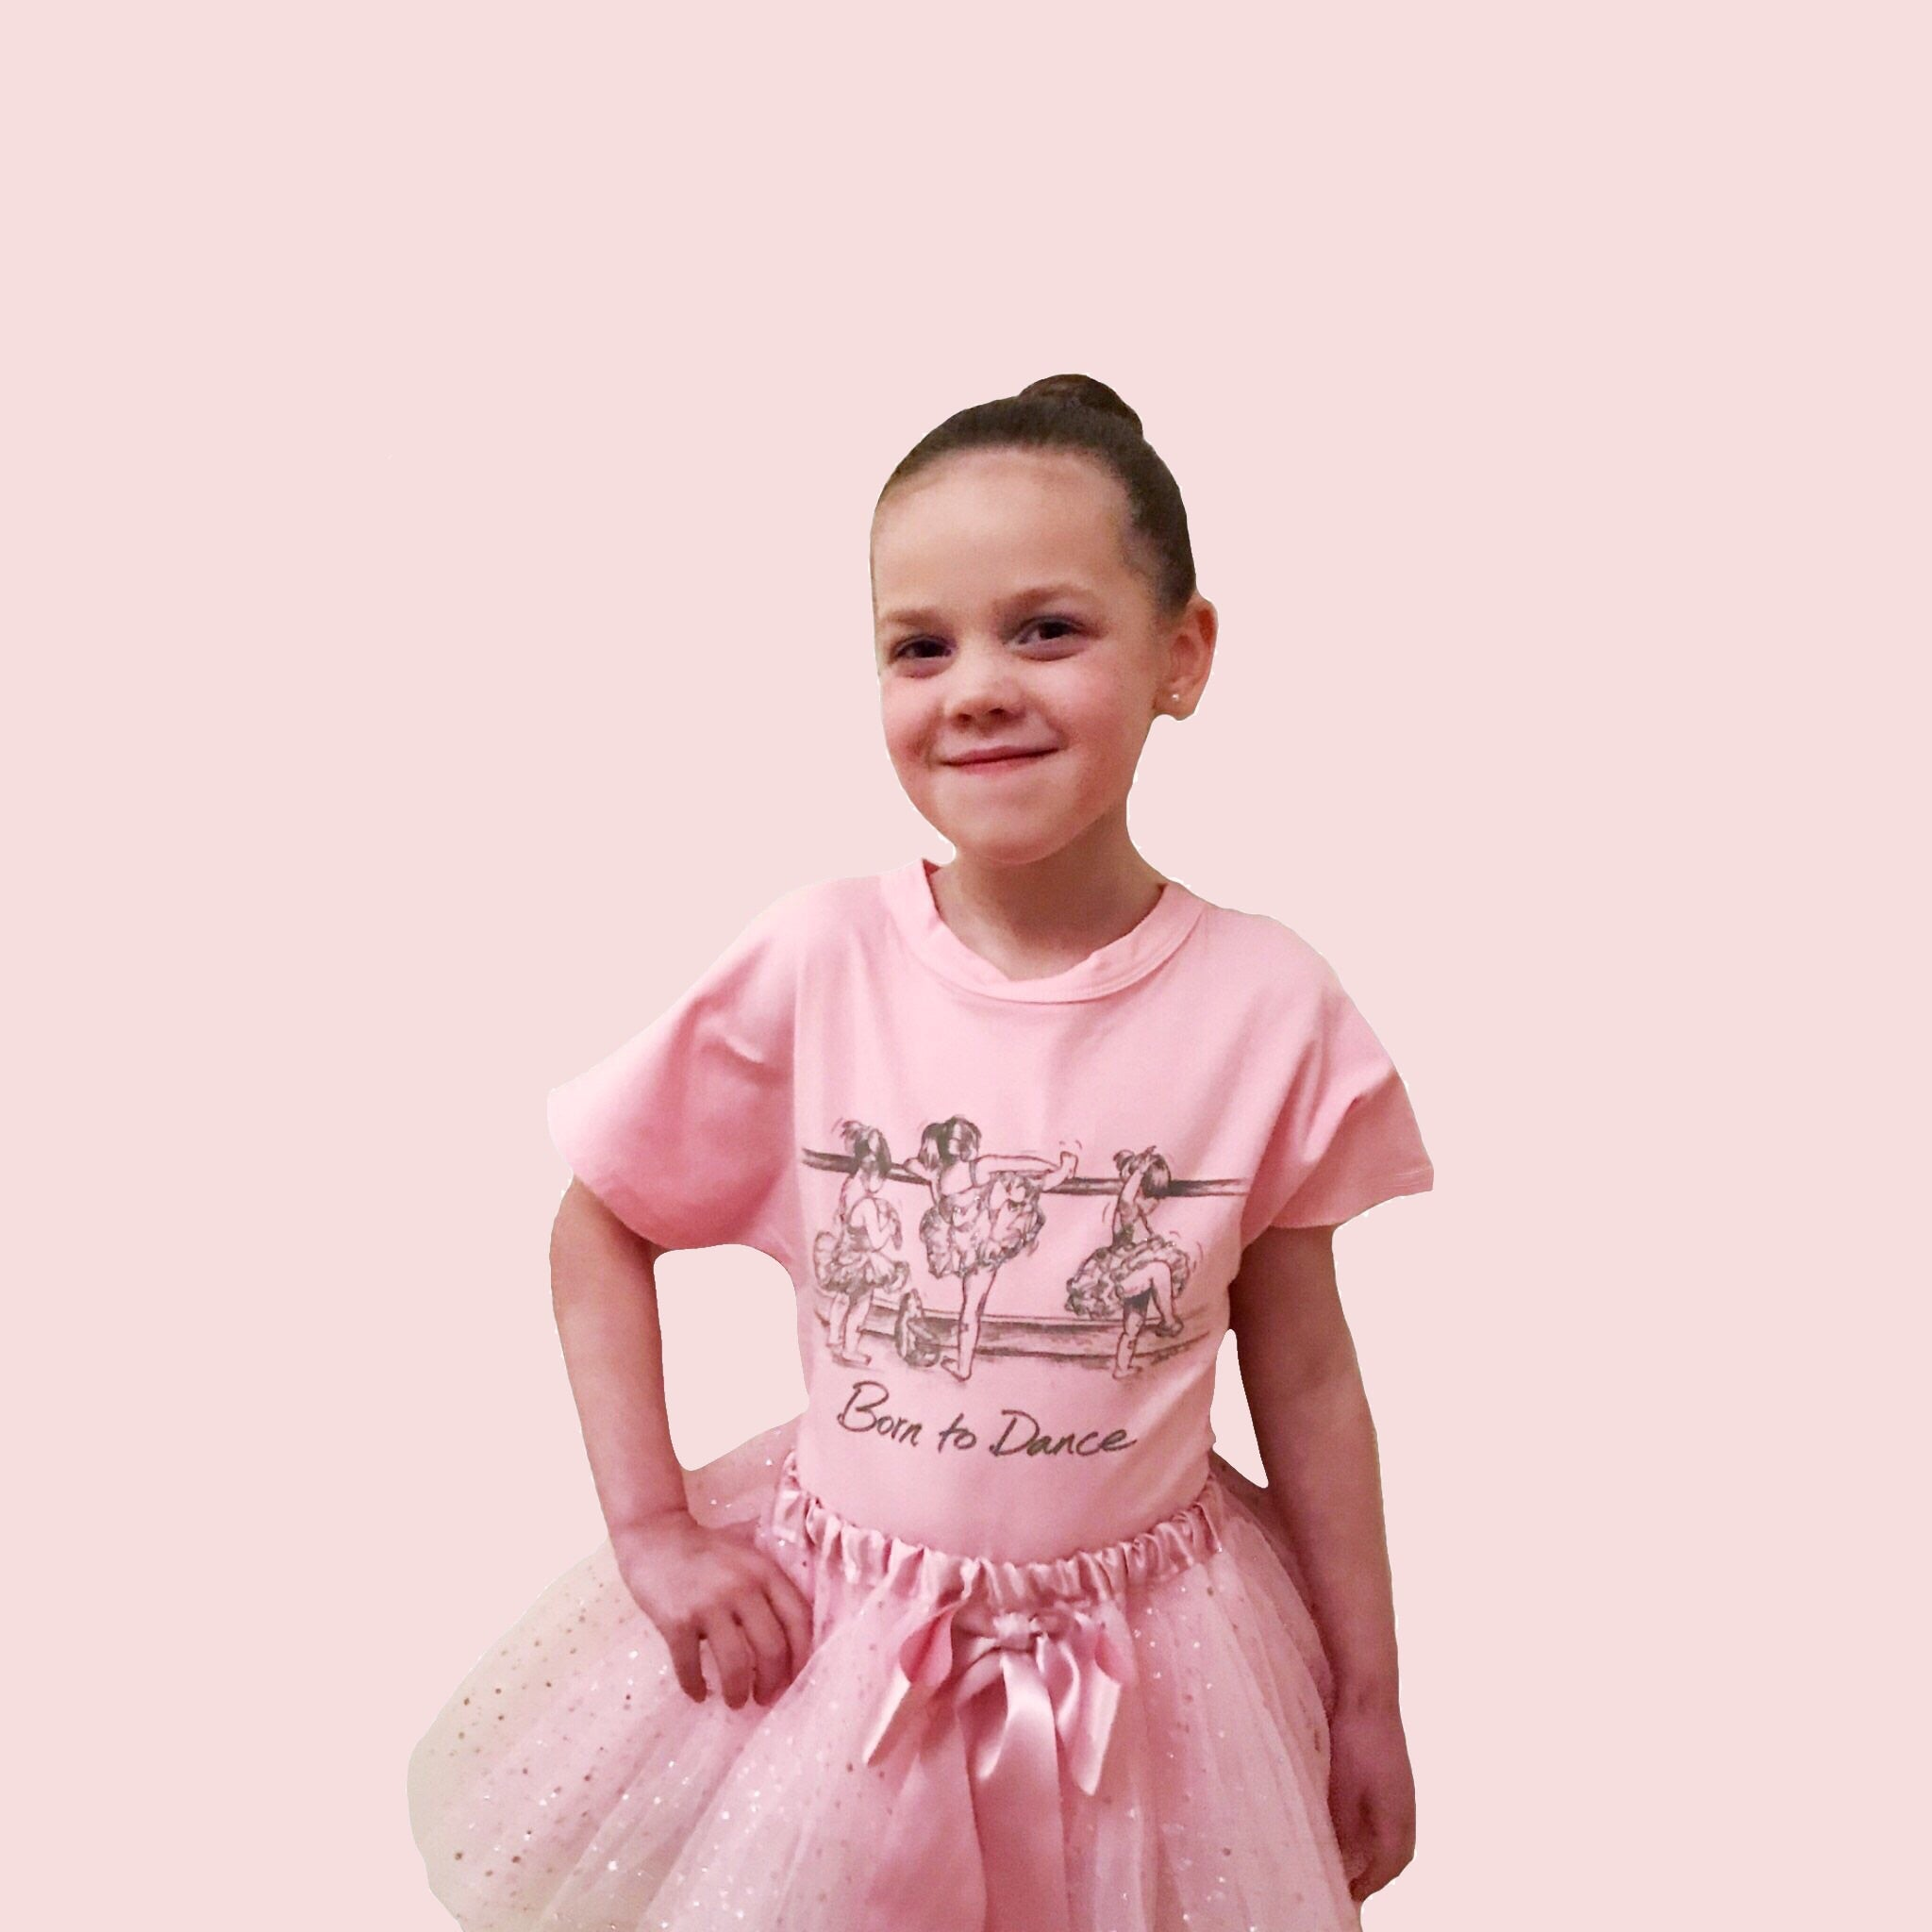 """At The Barre"" Kids T-shirt"